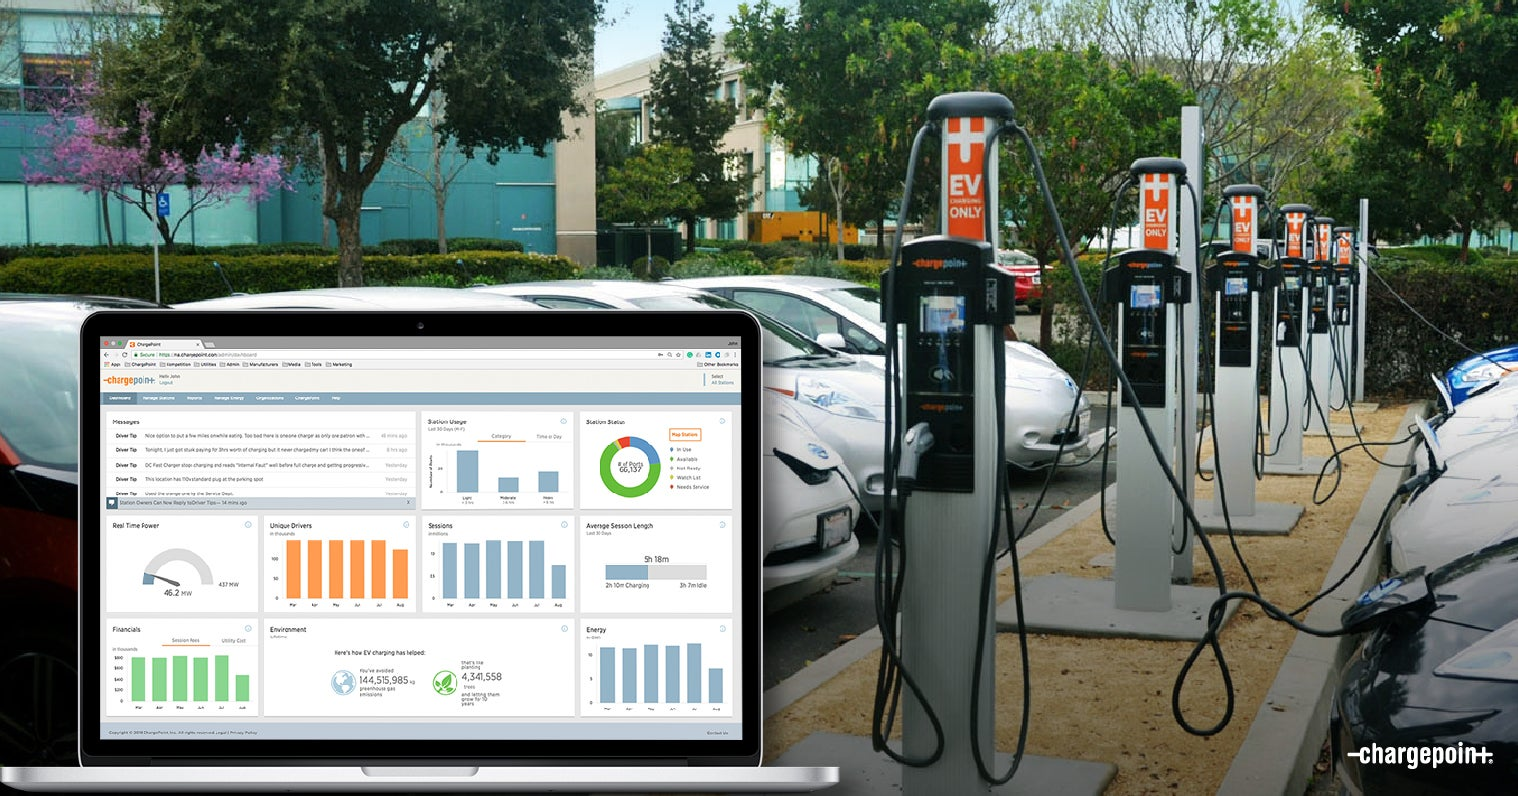 When Other Companies Were Pushing Standalone Electric Vehicle Ev Charging Stations Chargepoint Was Hard At Work Building An Integrated Fueling Network Of